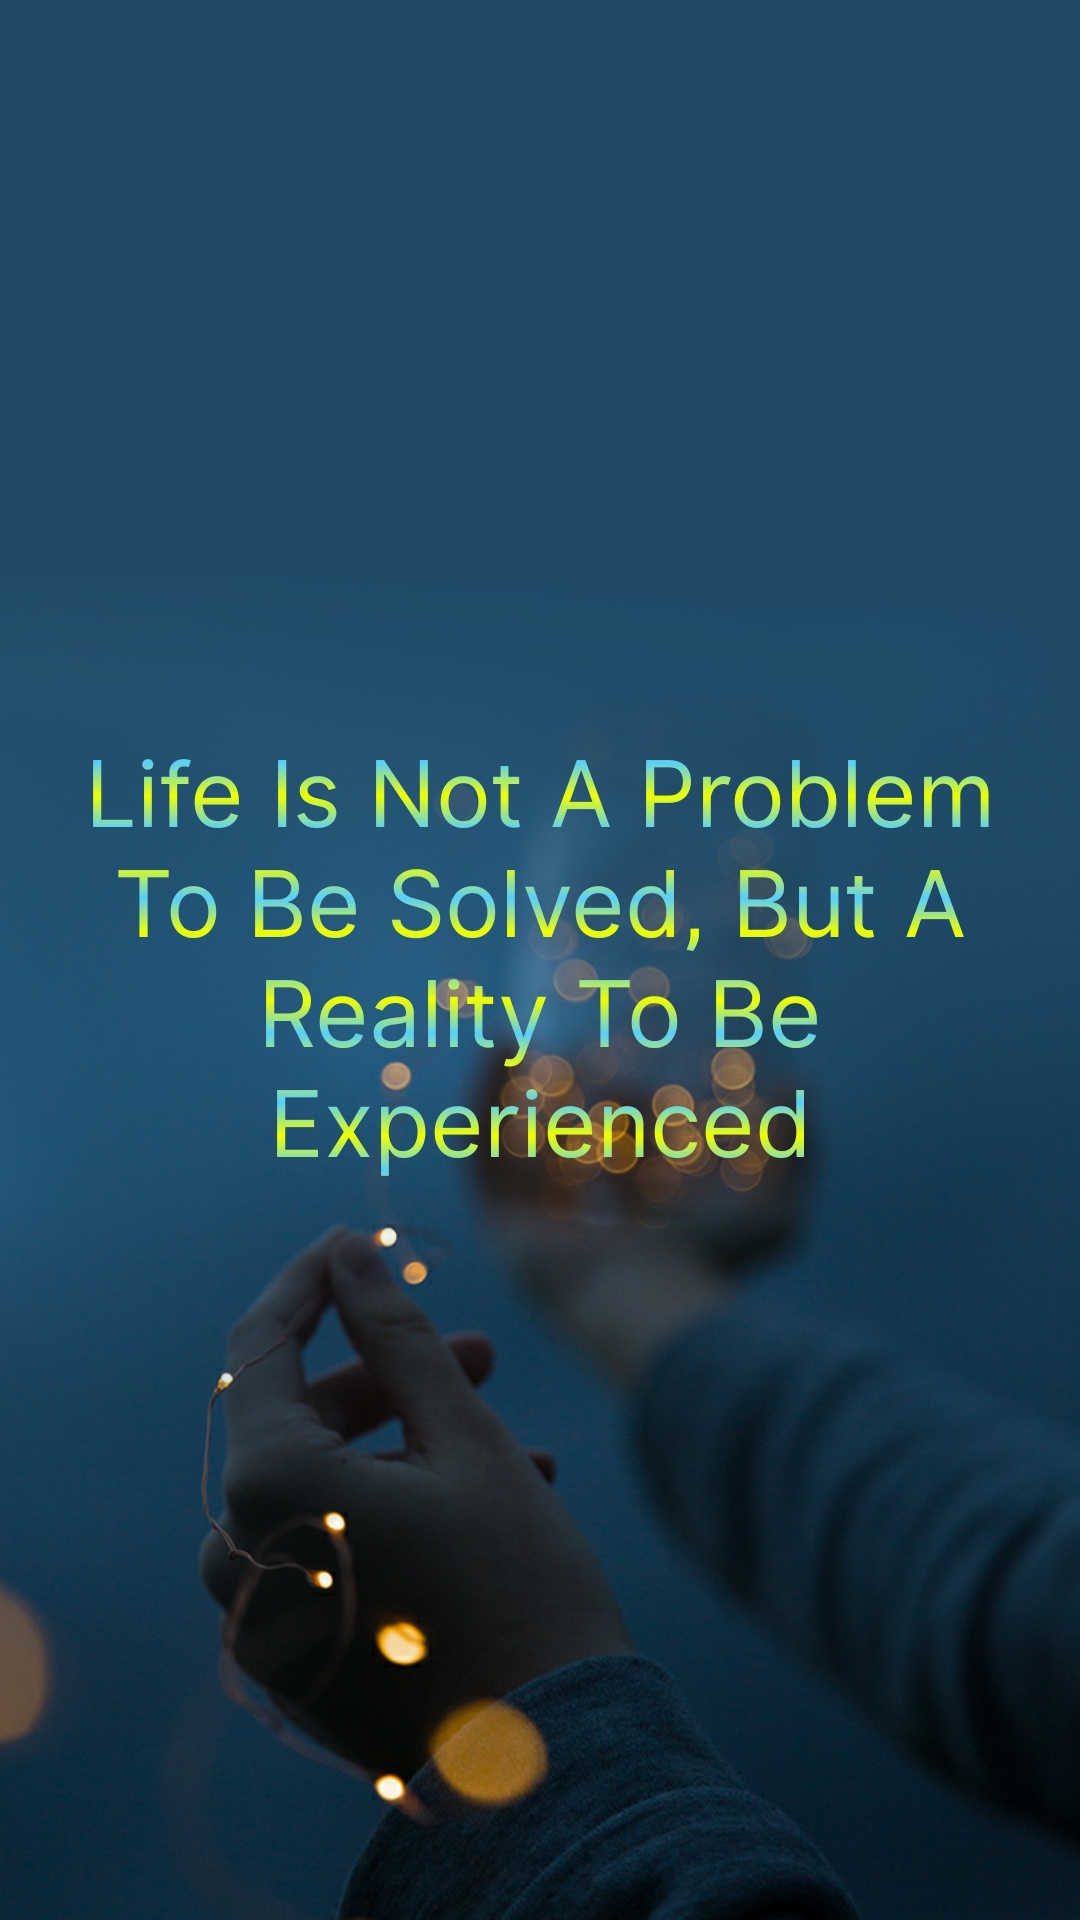 Life Is Not A Problem To Be Solved, But A Reality To Be Experienced